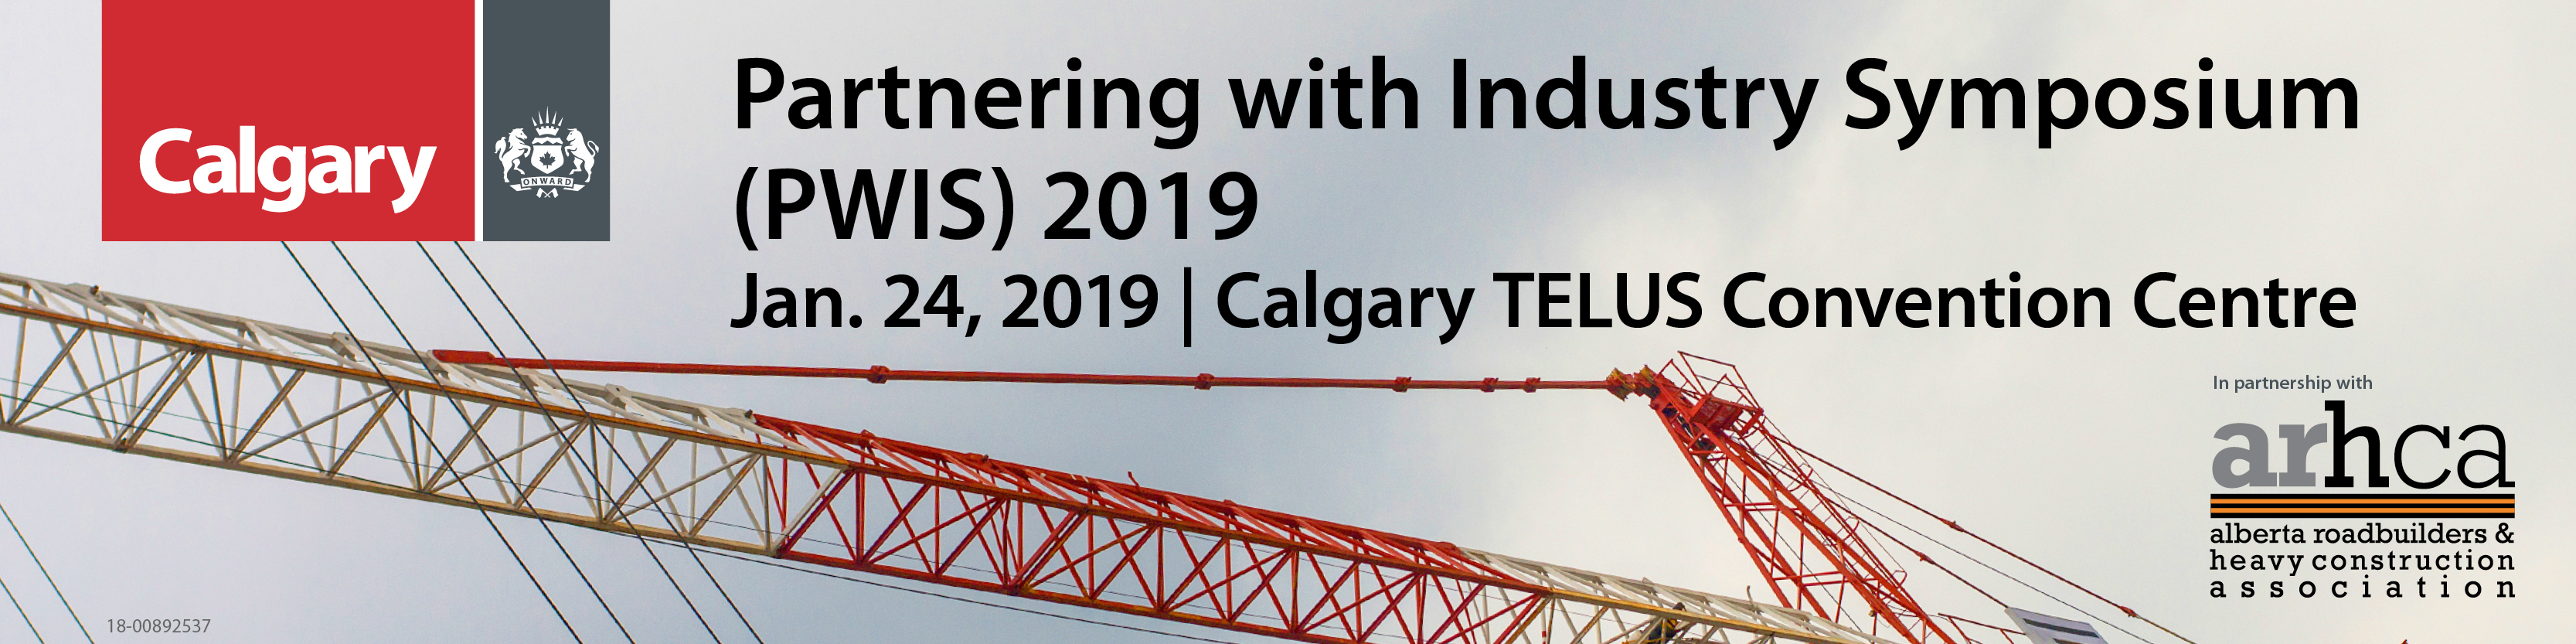 2019  City of Calgary Partnering with Industry Symposium